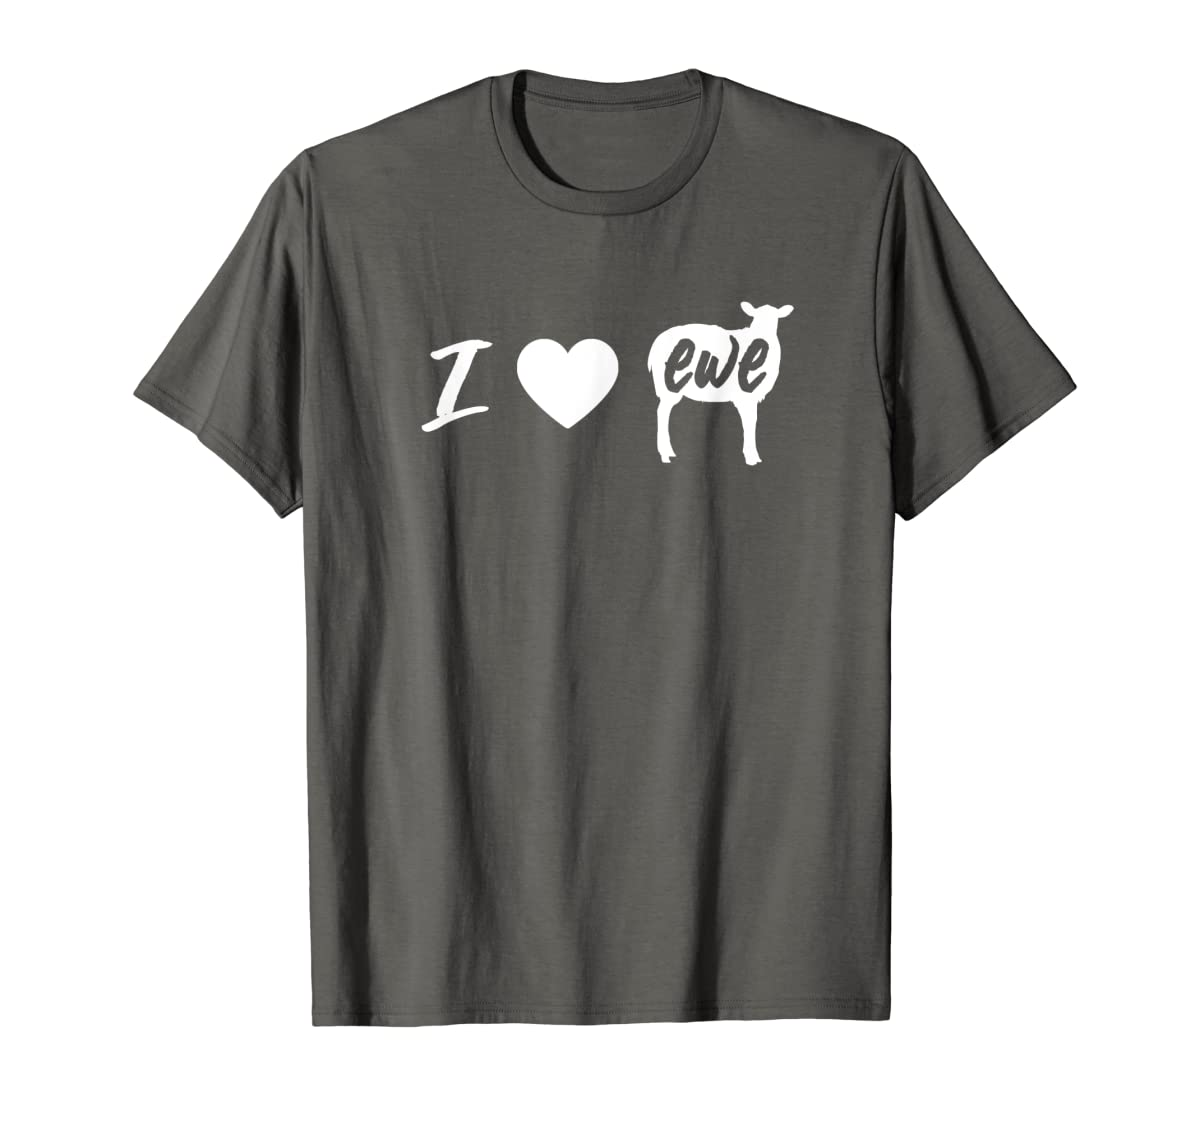 I Love Ewe - I Love You Sheep Pun Shirt-Men's T-Shirt-Dark Heather